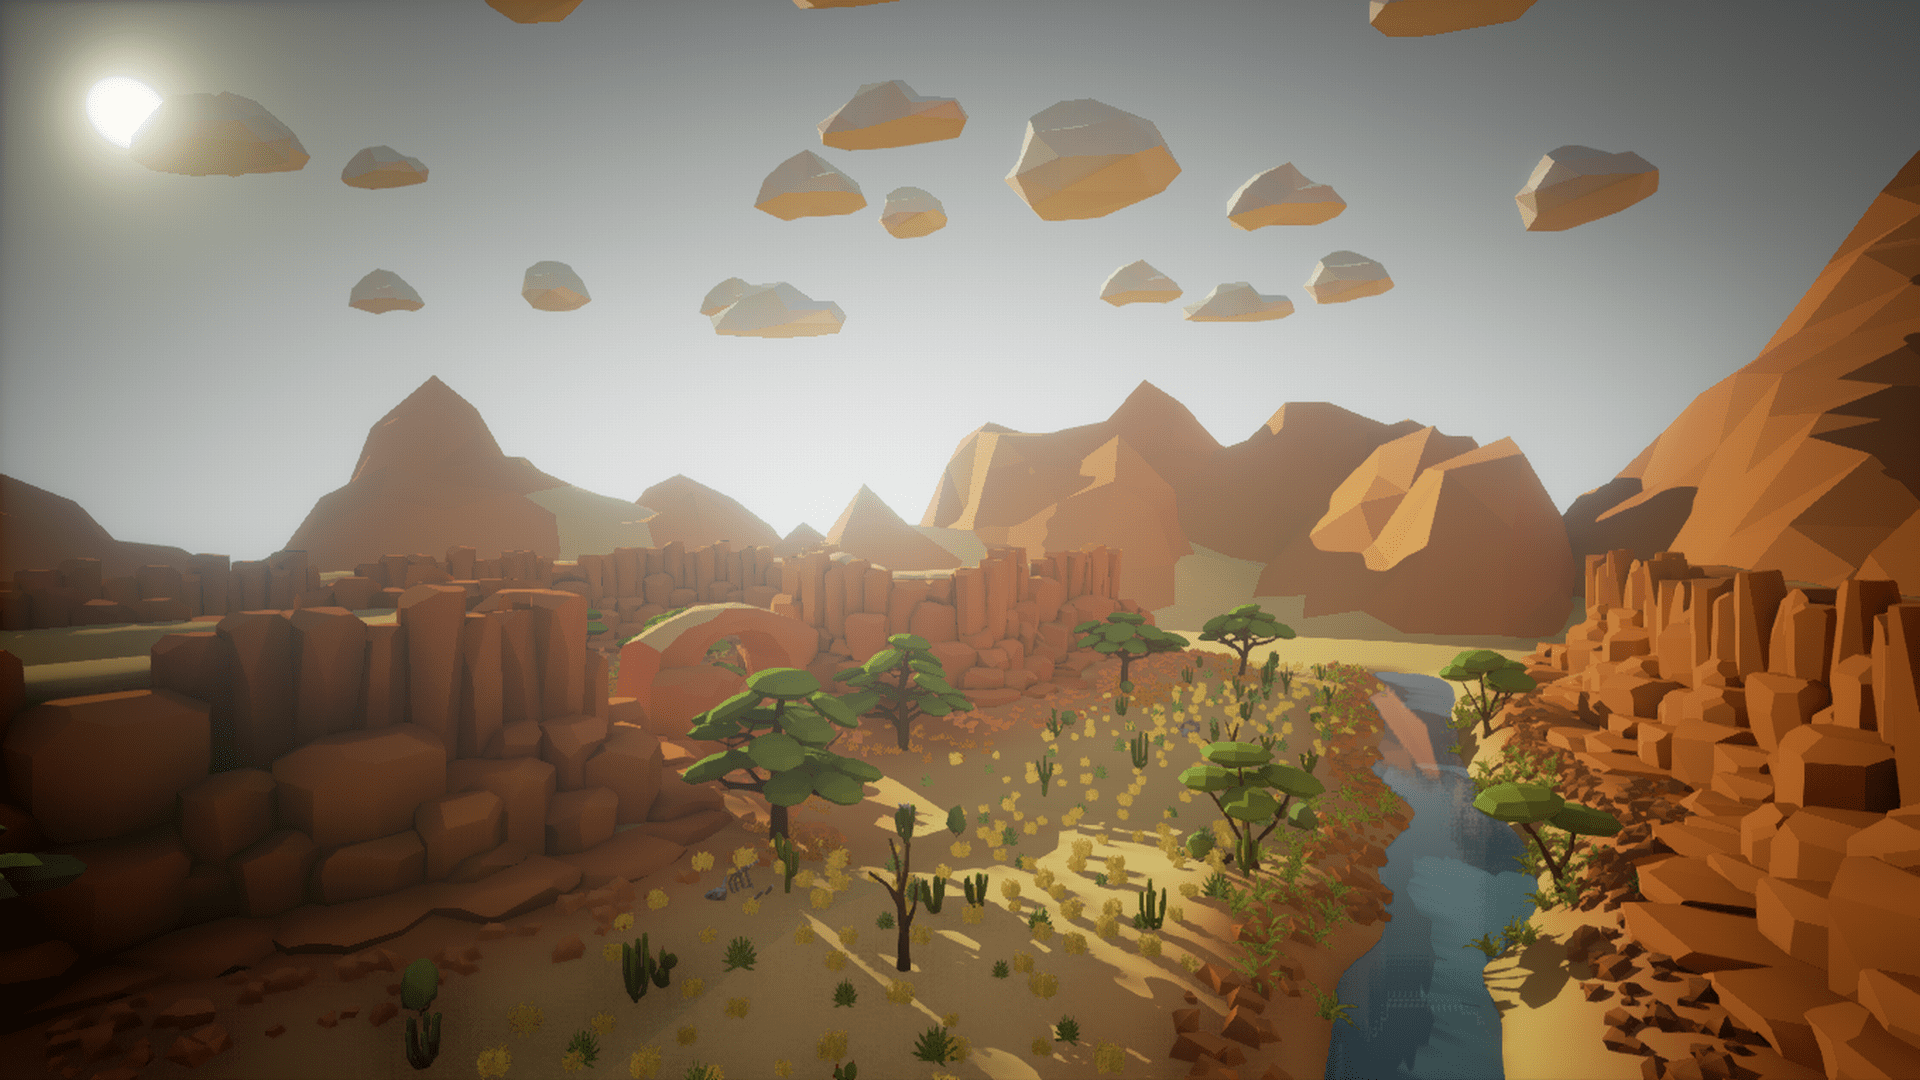 olbert s low poly desert by whitman and olbert in